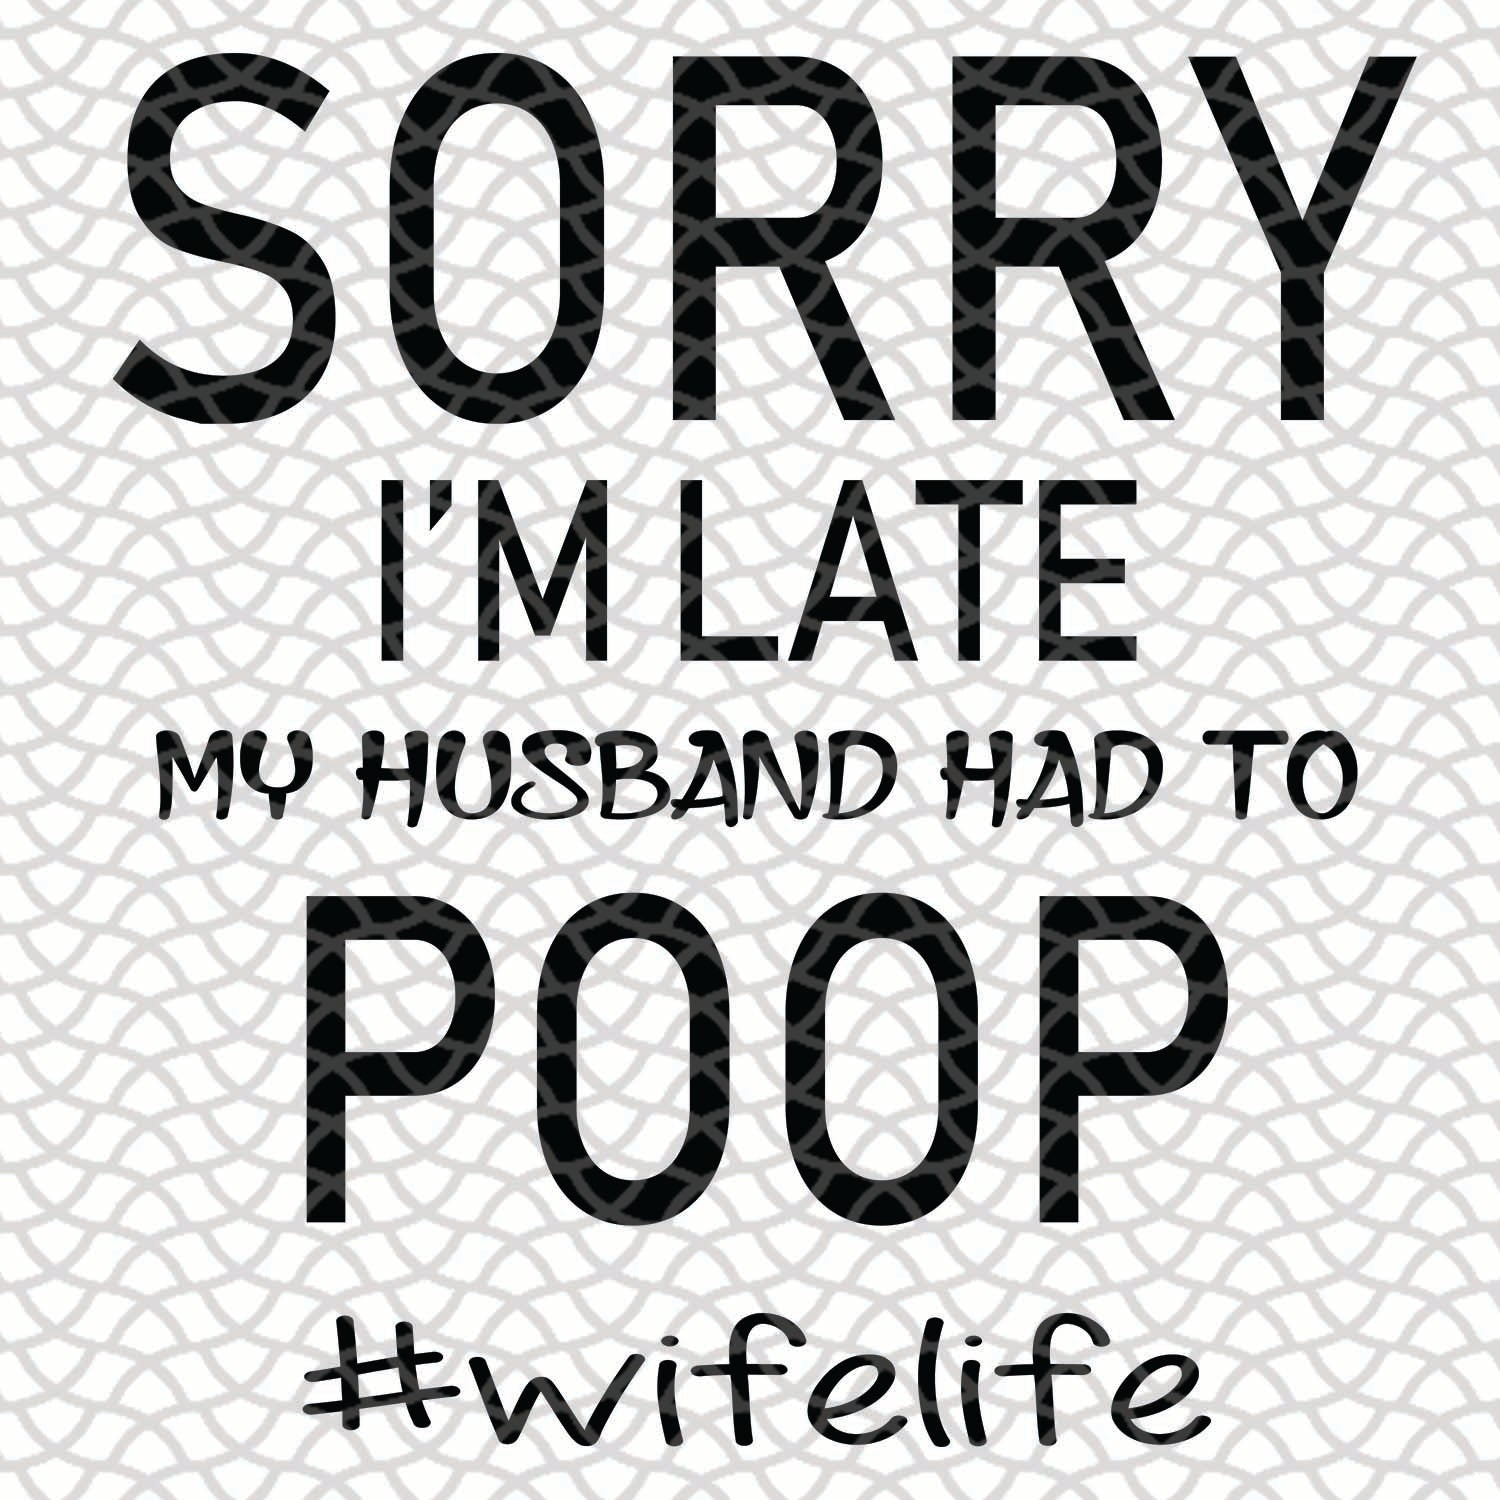 Sorry i'm late my husband had to poop, husband svg, husband life, husband birthday, husband gift, best husband ever,family svg, family shirt,family gift,trending svg, Files For Silhouette, Files For Cricut, SVG, DXF, EPS, PNG, Instant Download